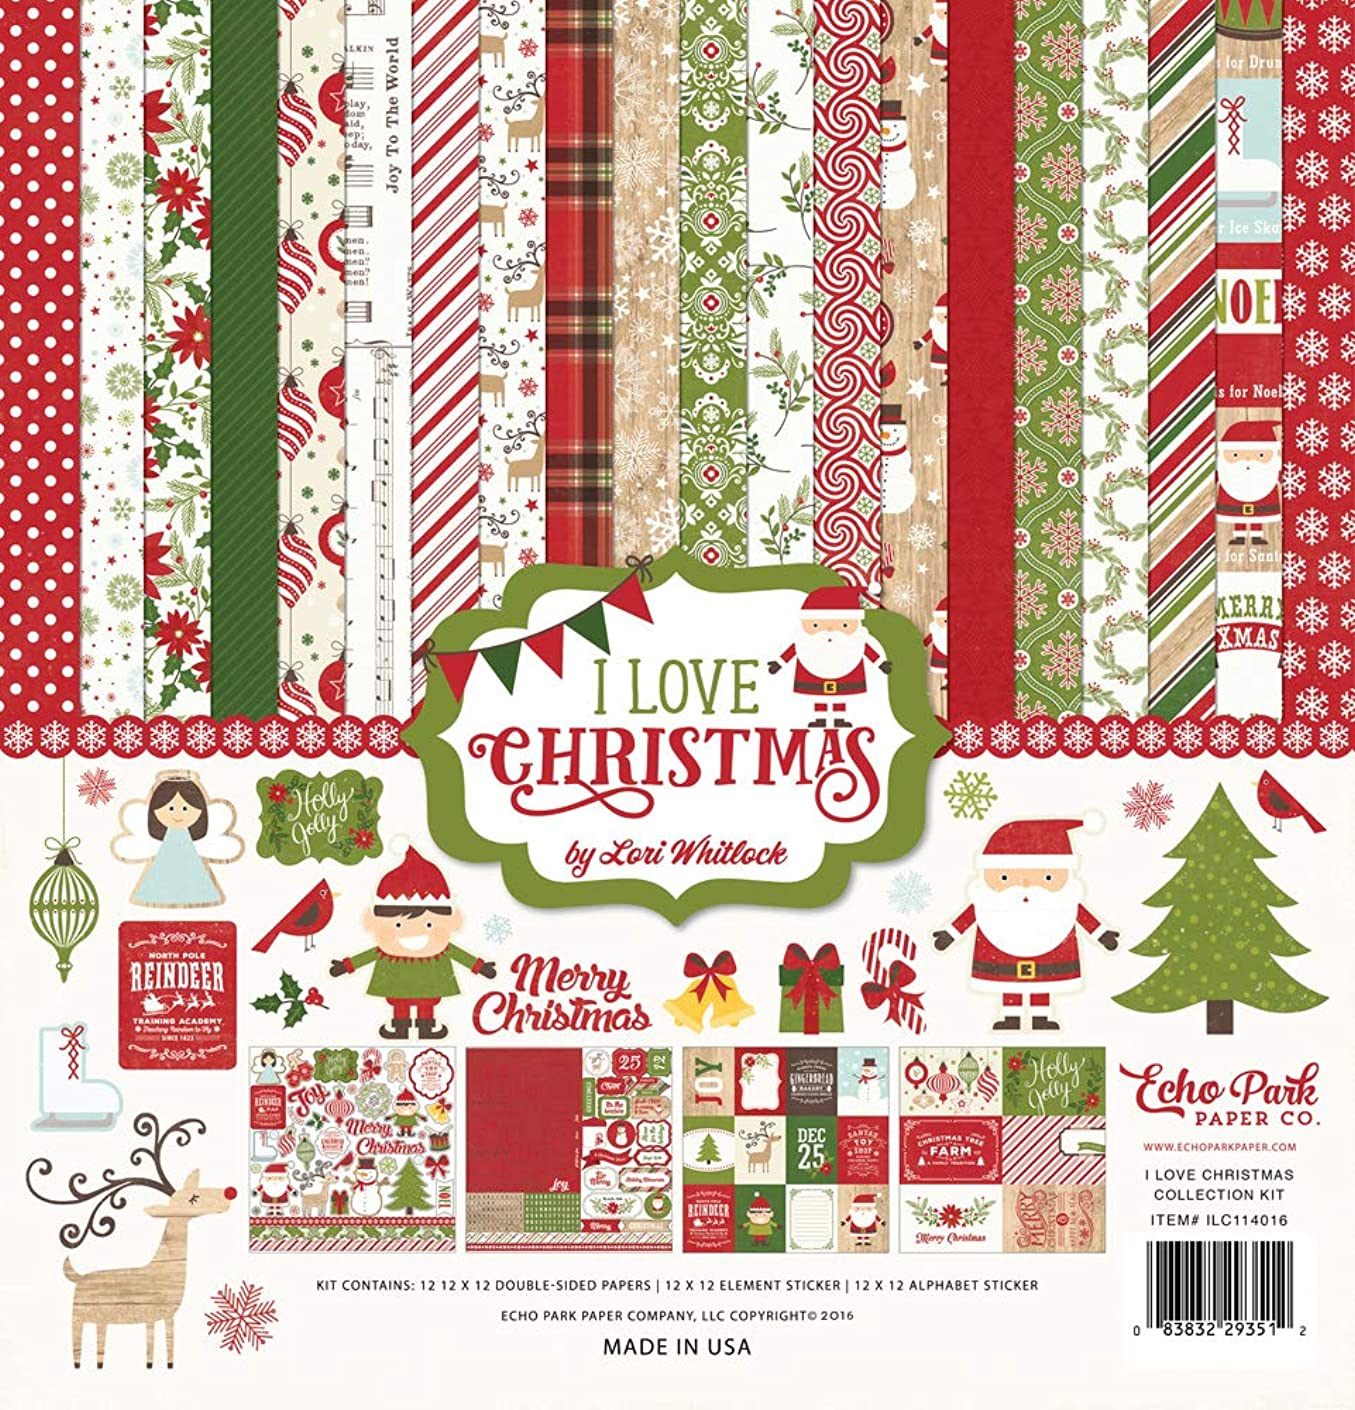 Echo Park - I Love Christmas Collection Scrapbooking Kit by Lori Whitlock - Item #: ILC114016TM - Copyright 2016